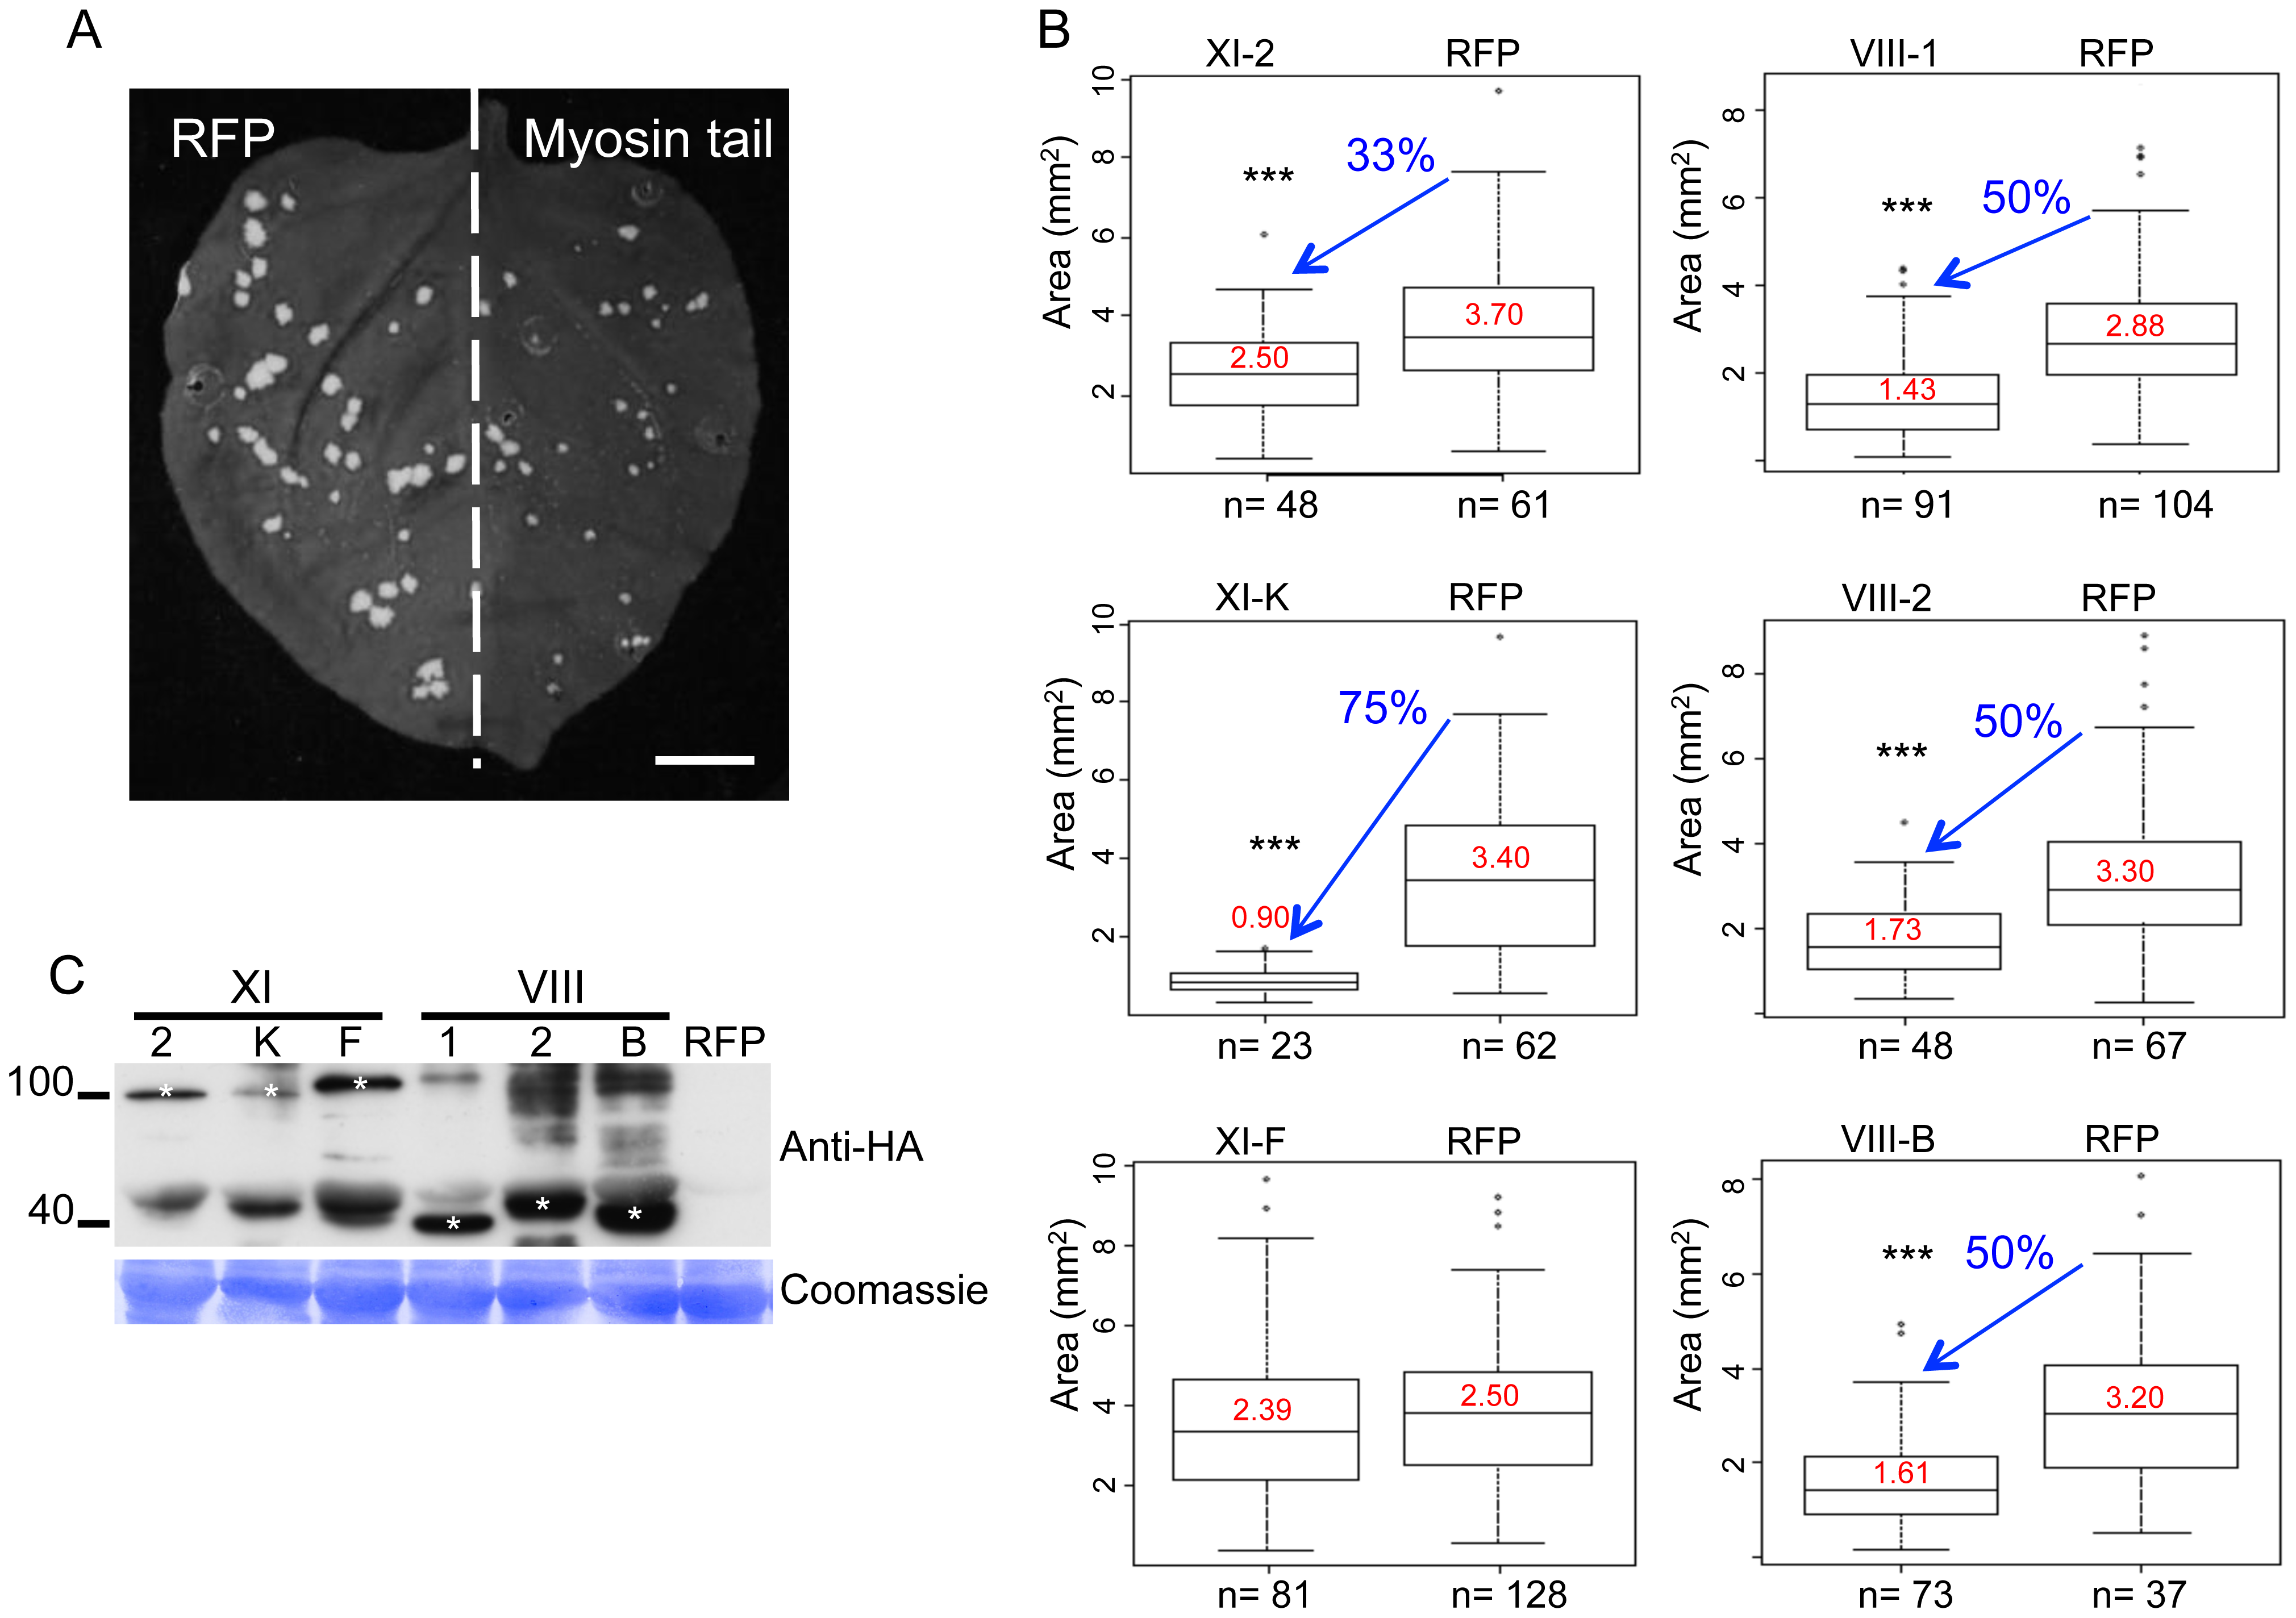 Dominant negative repression of specific myosins inhibits TMV-GFP cell-to-cell spread.